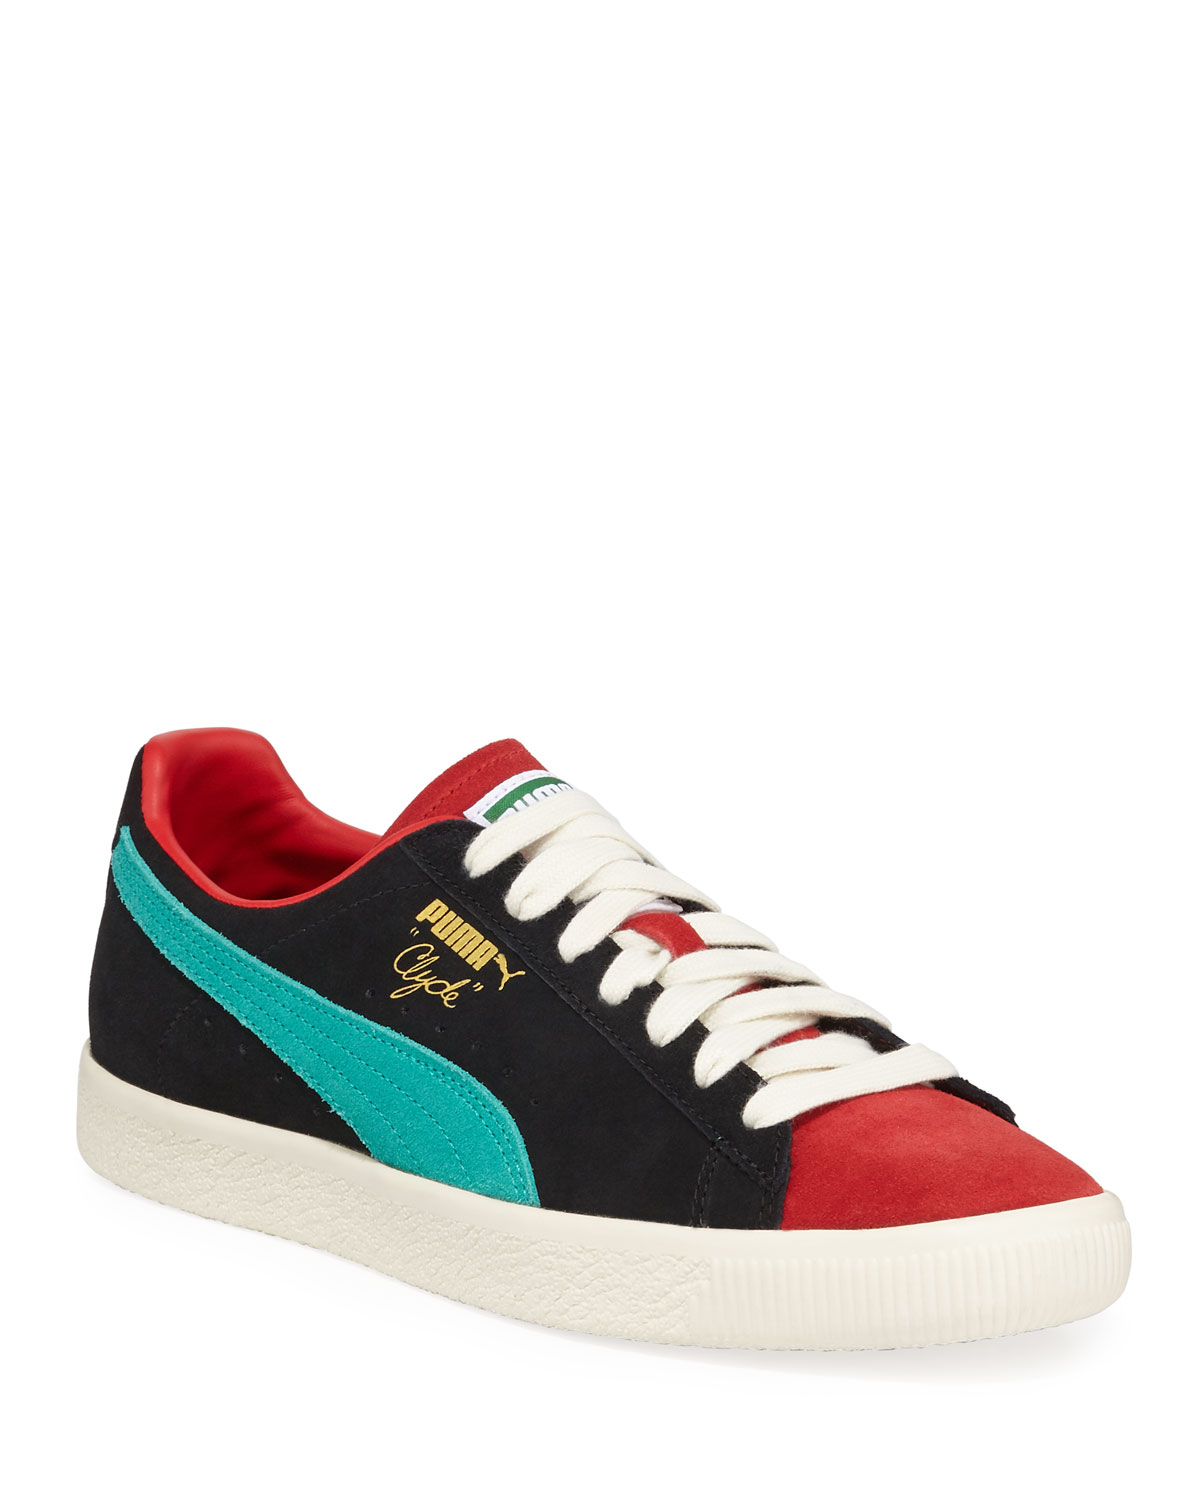 Puma Men s Clyde Colorblock Suede Platform Low-Top Sneakers  b084cff49